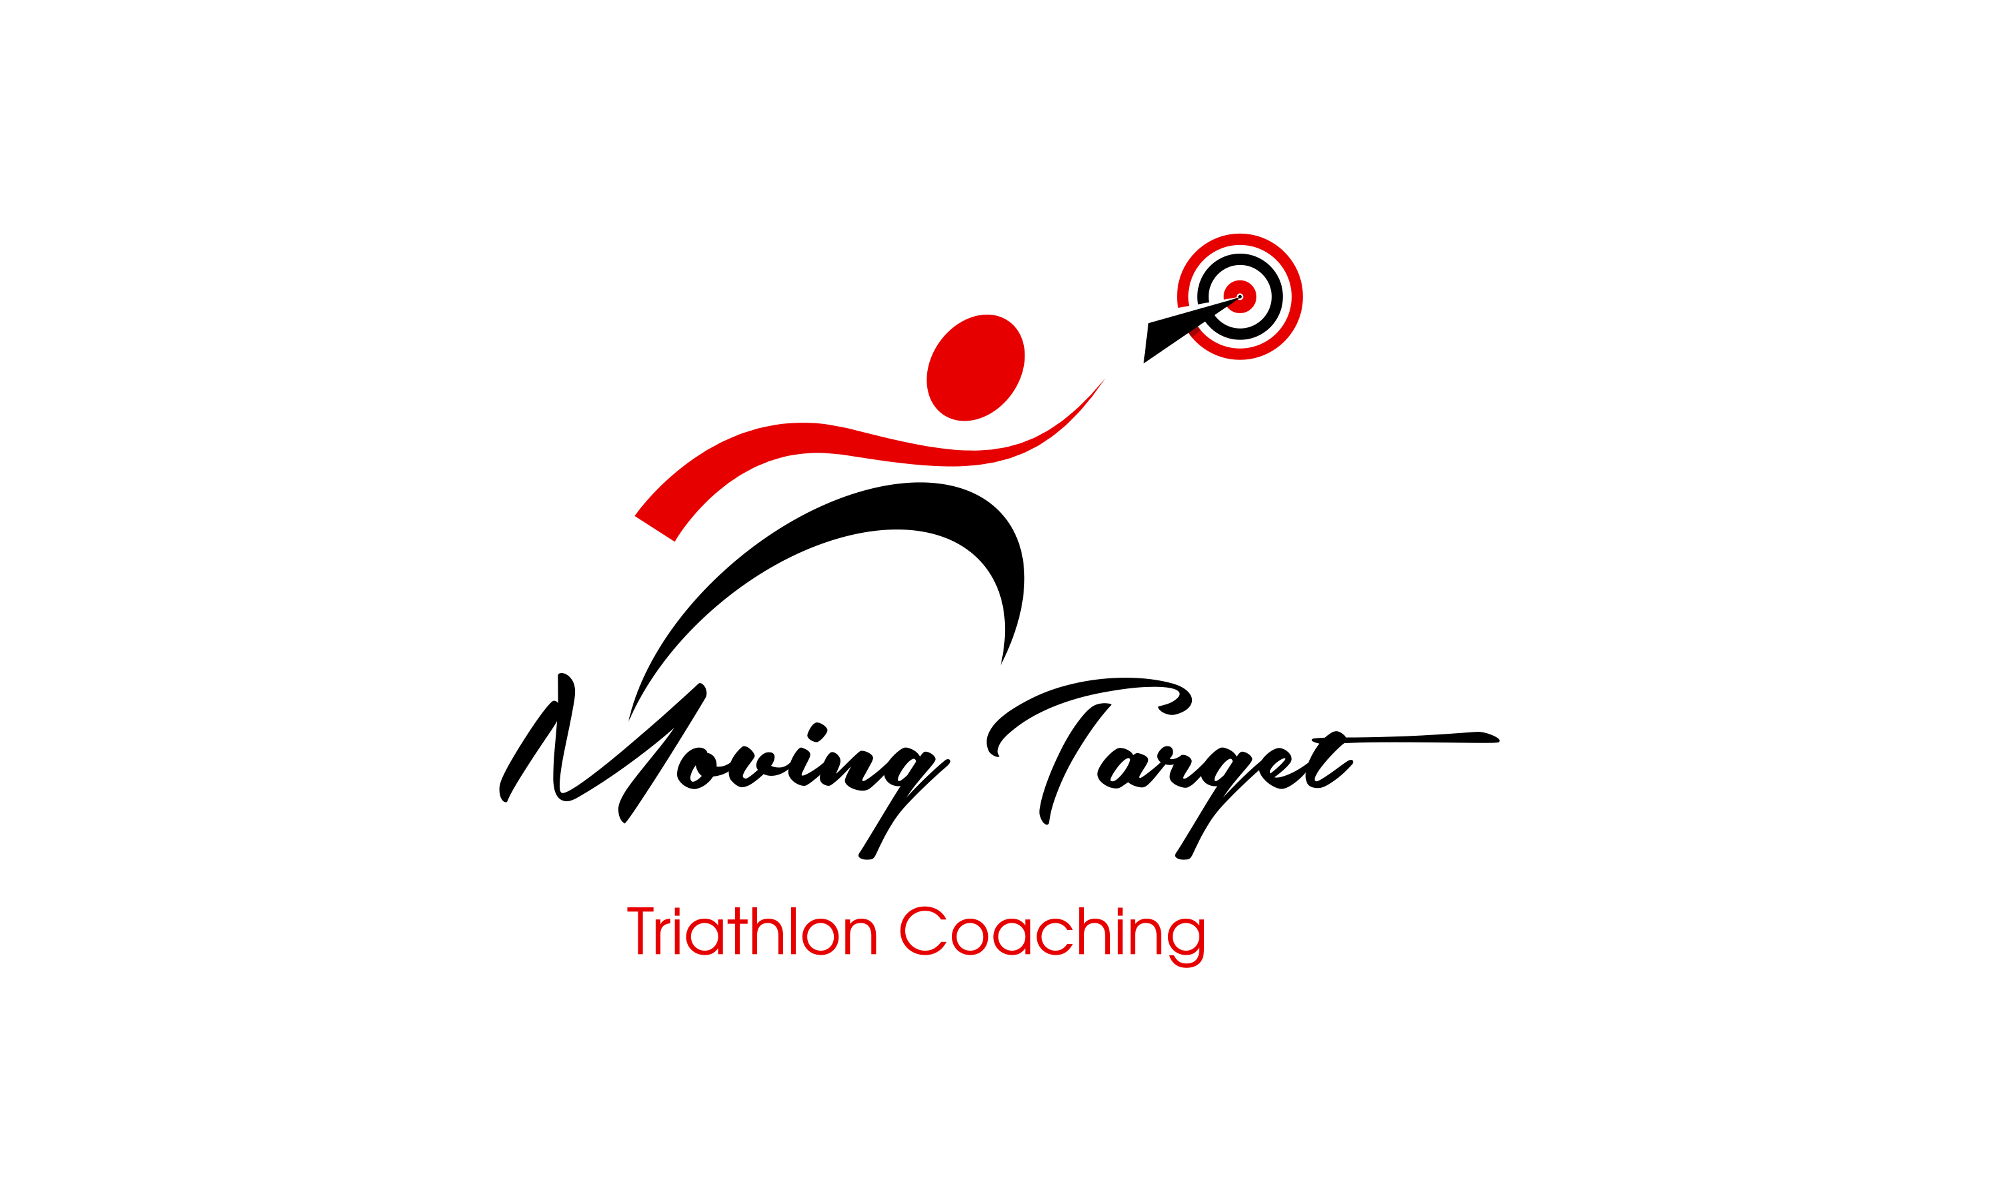 Moving Target Triathlon Coaching